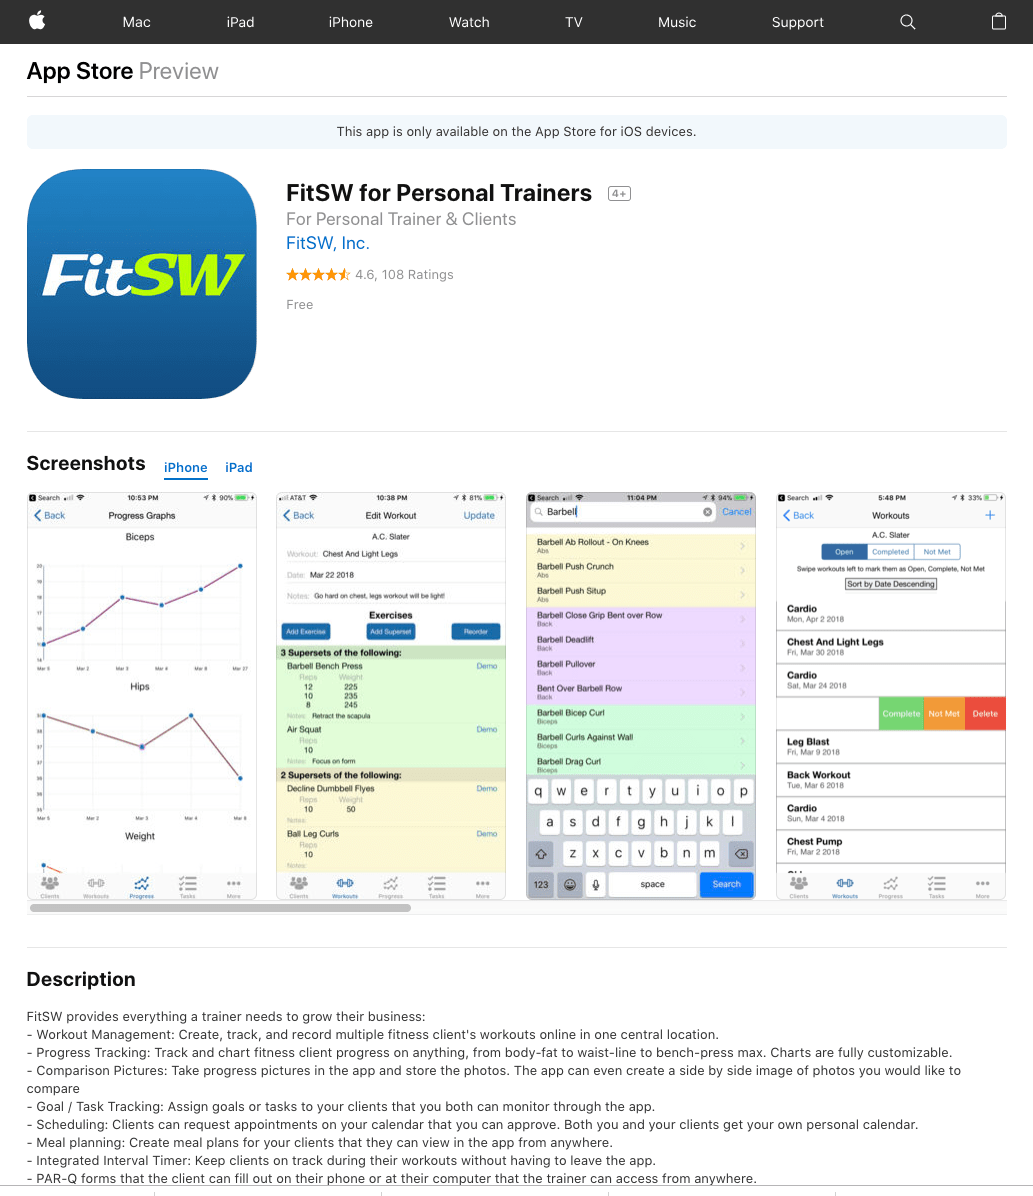 Update your iOS and Android Apps to the Latest Versions - FitSW Blog